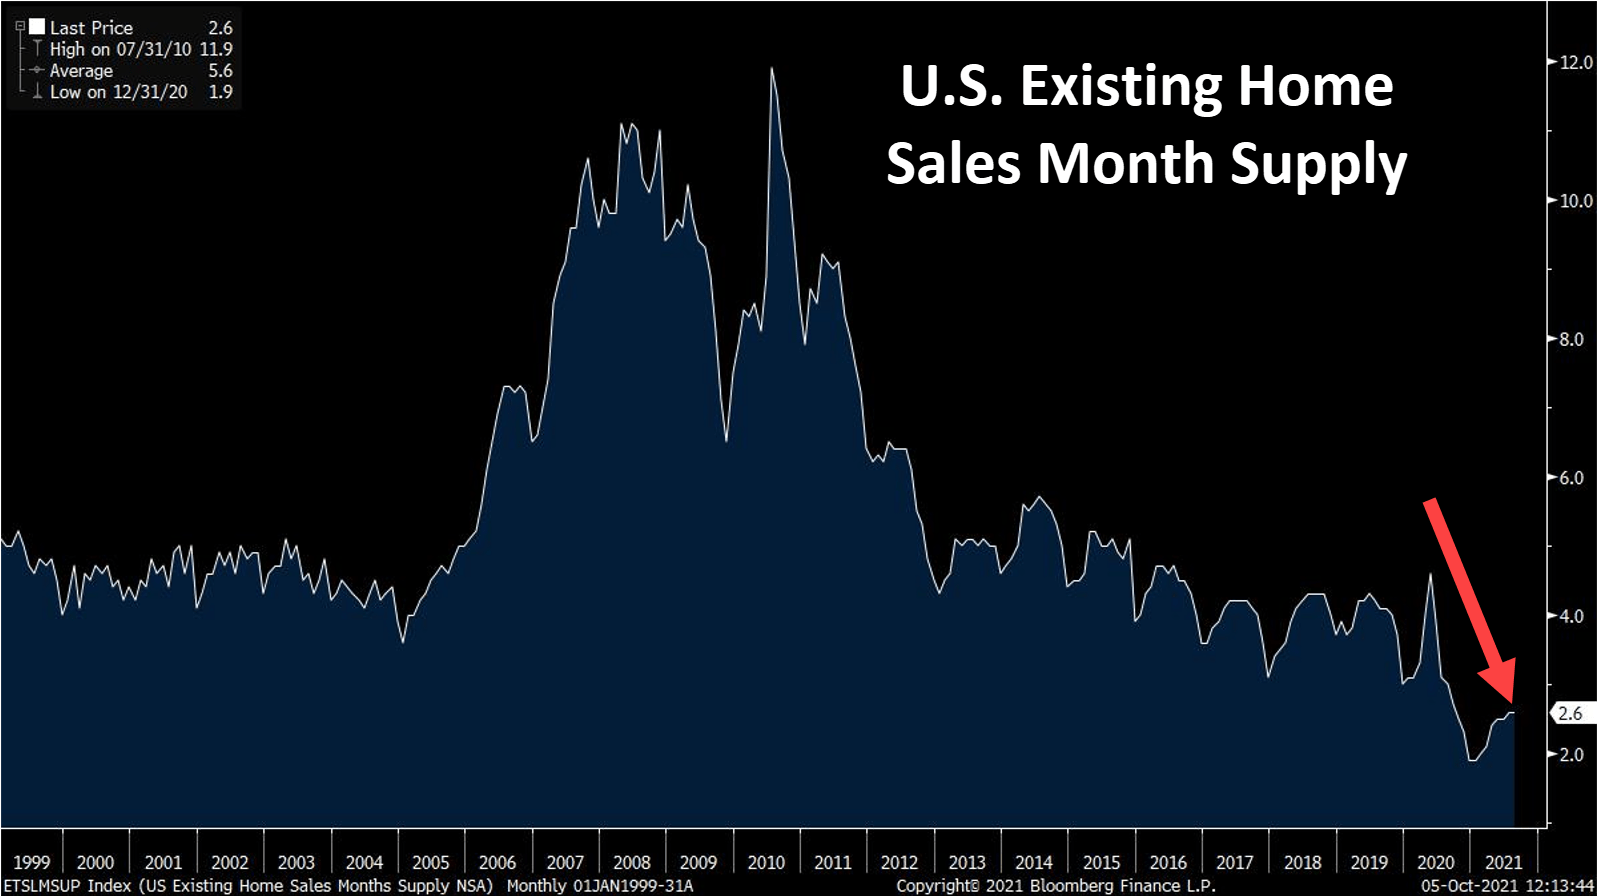 u.s. existing home sales month supply